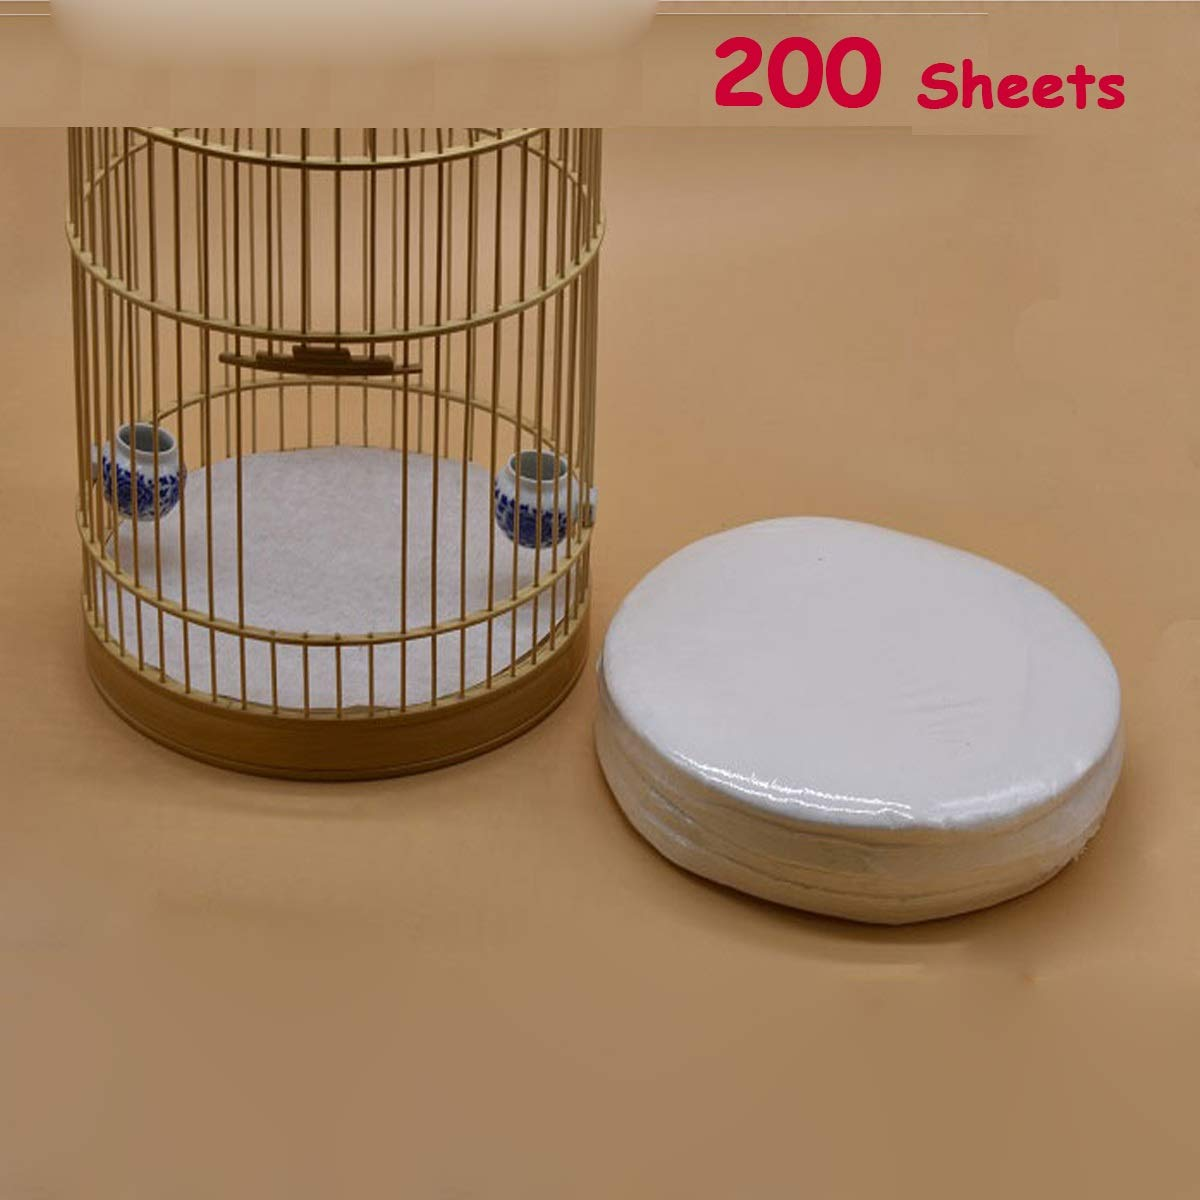 Bonaweite Disposable Non-Woven Bird Cage Liners Papers, Parrot Pet Cages Cushion Pad Mat Accessories, Round-200 Sheets